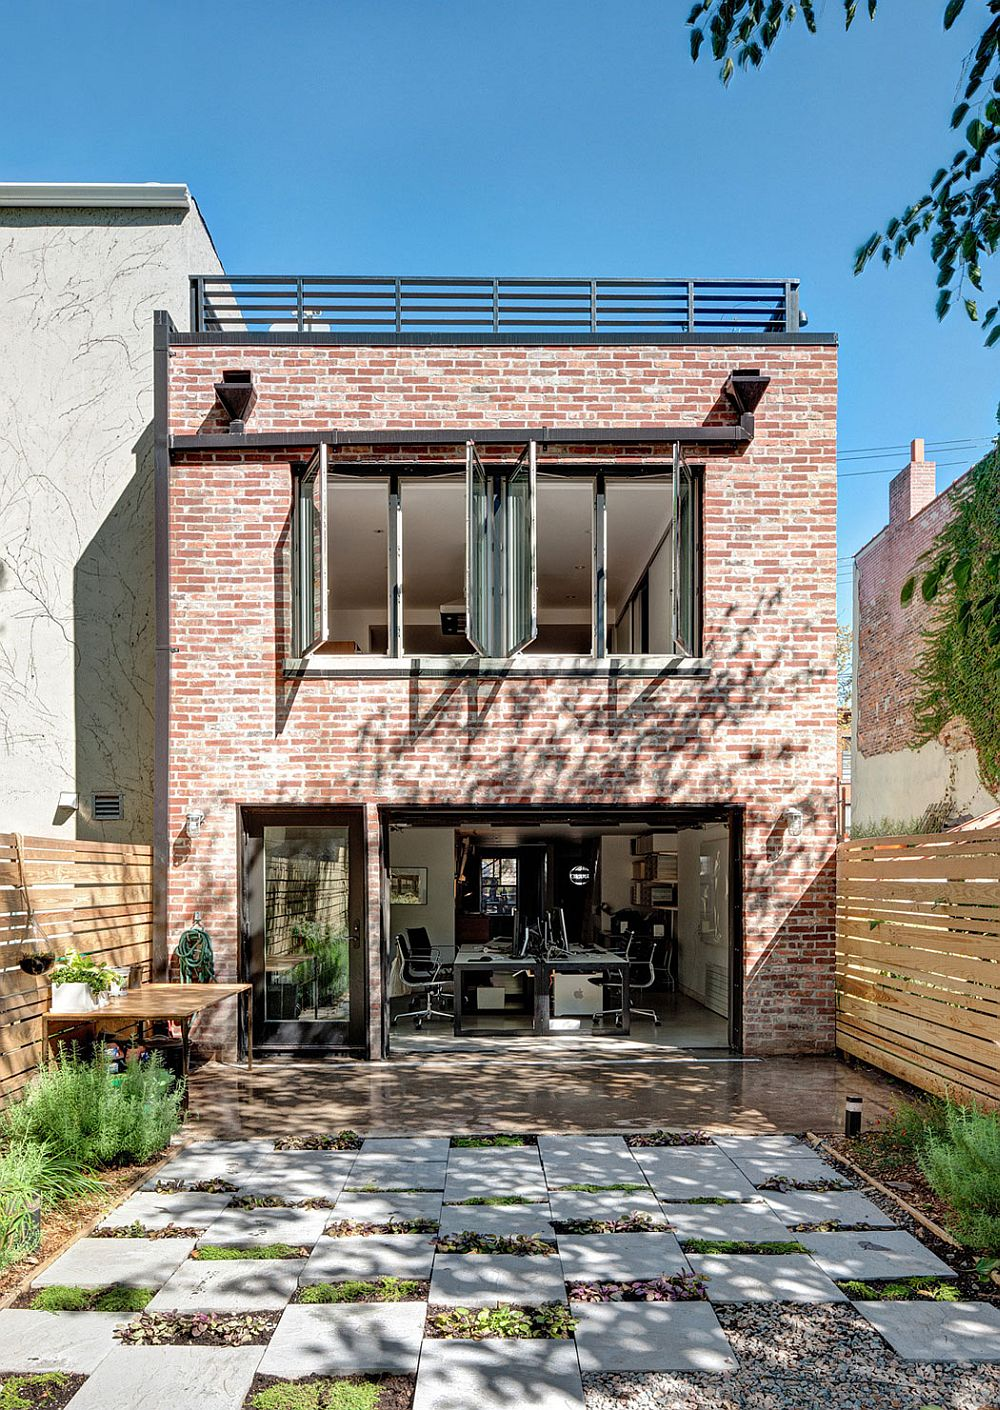 Weathered brick walls of the Brooklyn home gve it a timeless appeal